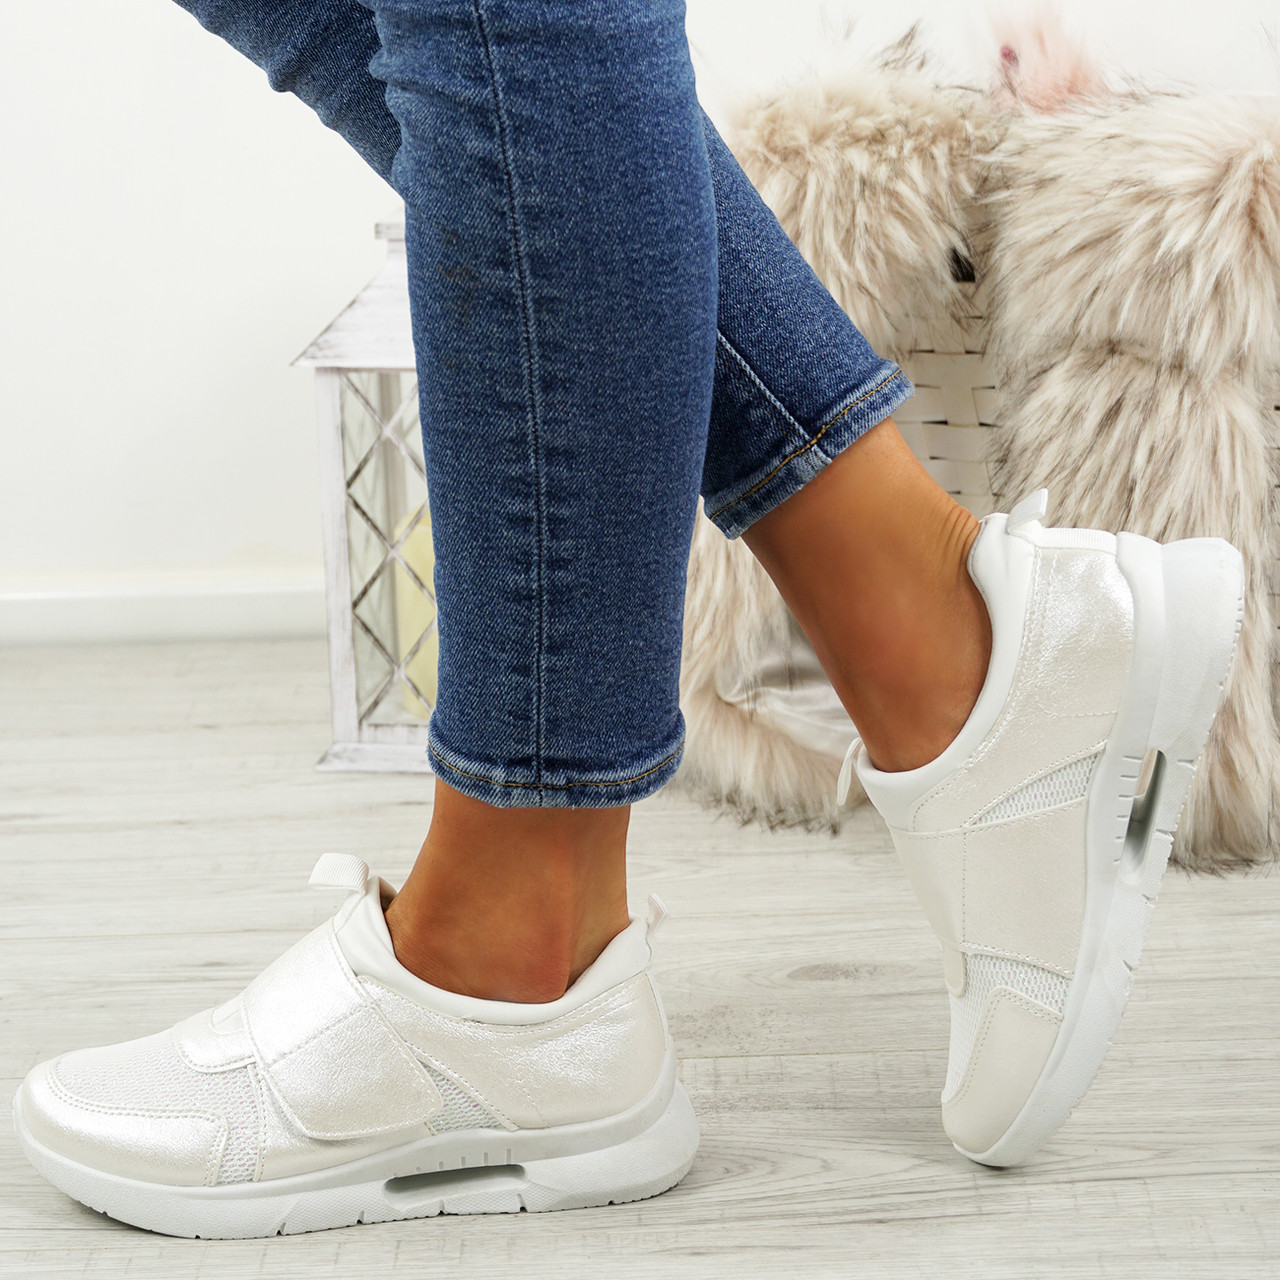 dd243d1cfcd Griley White Shiny Trainers